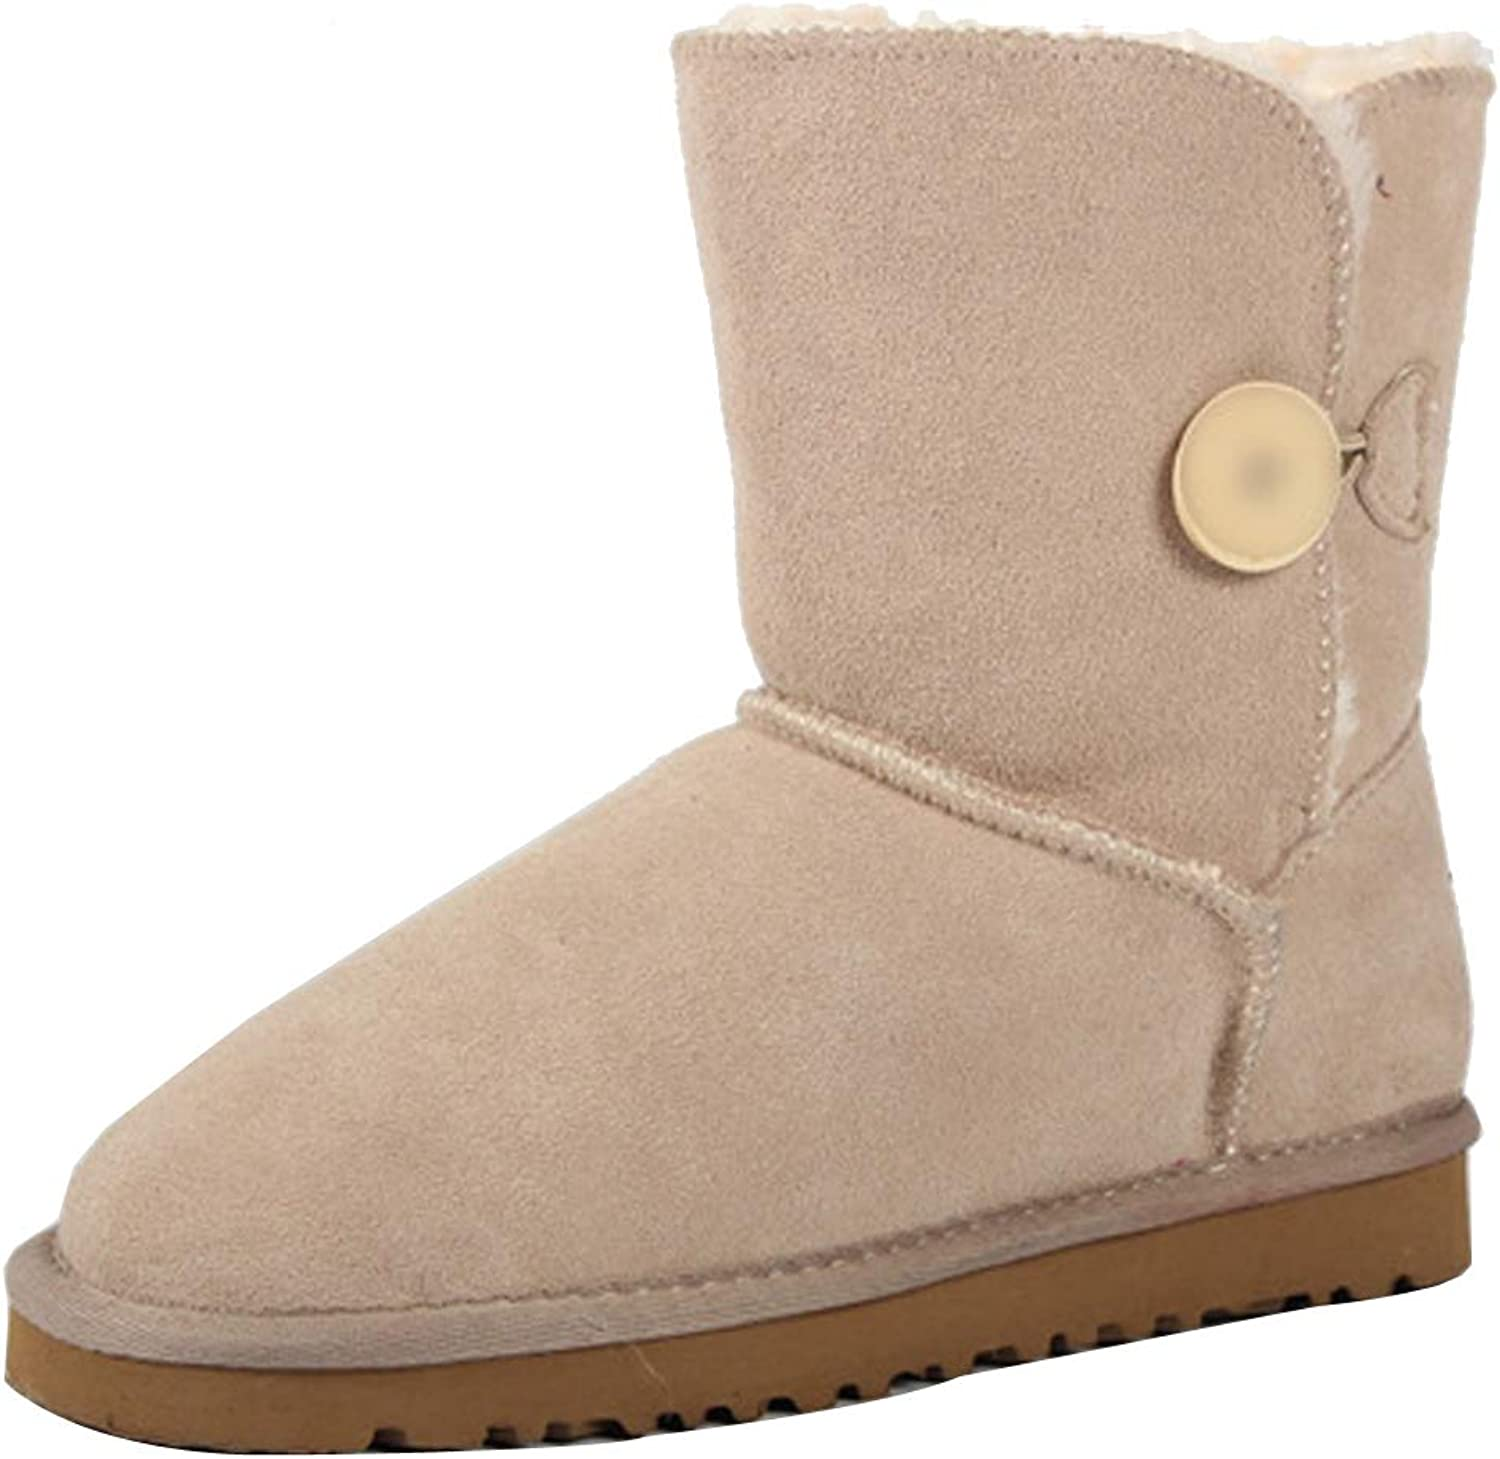 Themost Snow Boots Women's Suede Leather Sheepskin Fur Lining Winter Boot Walk Ankle Booties Beige